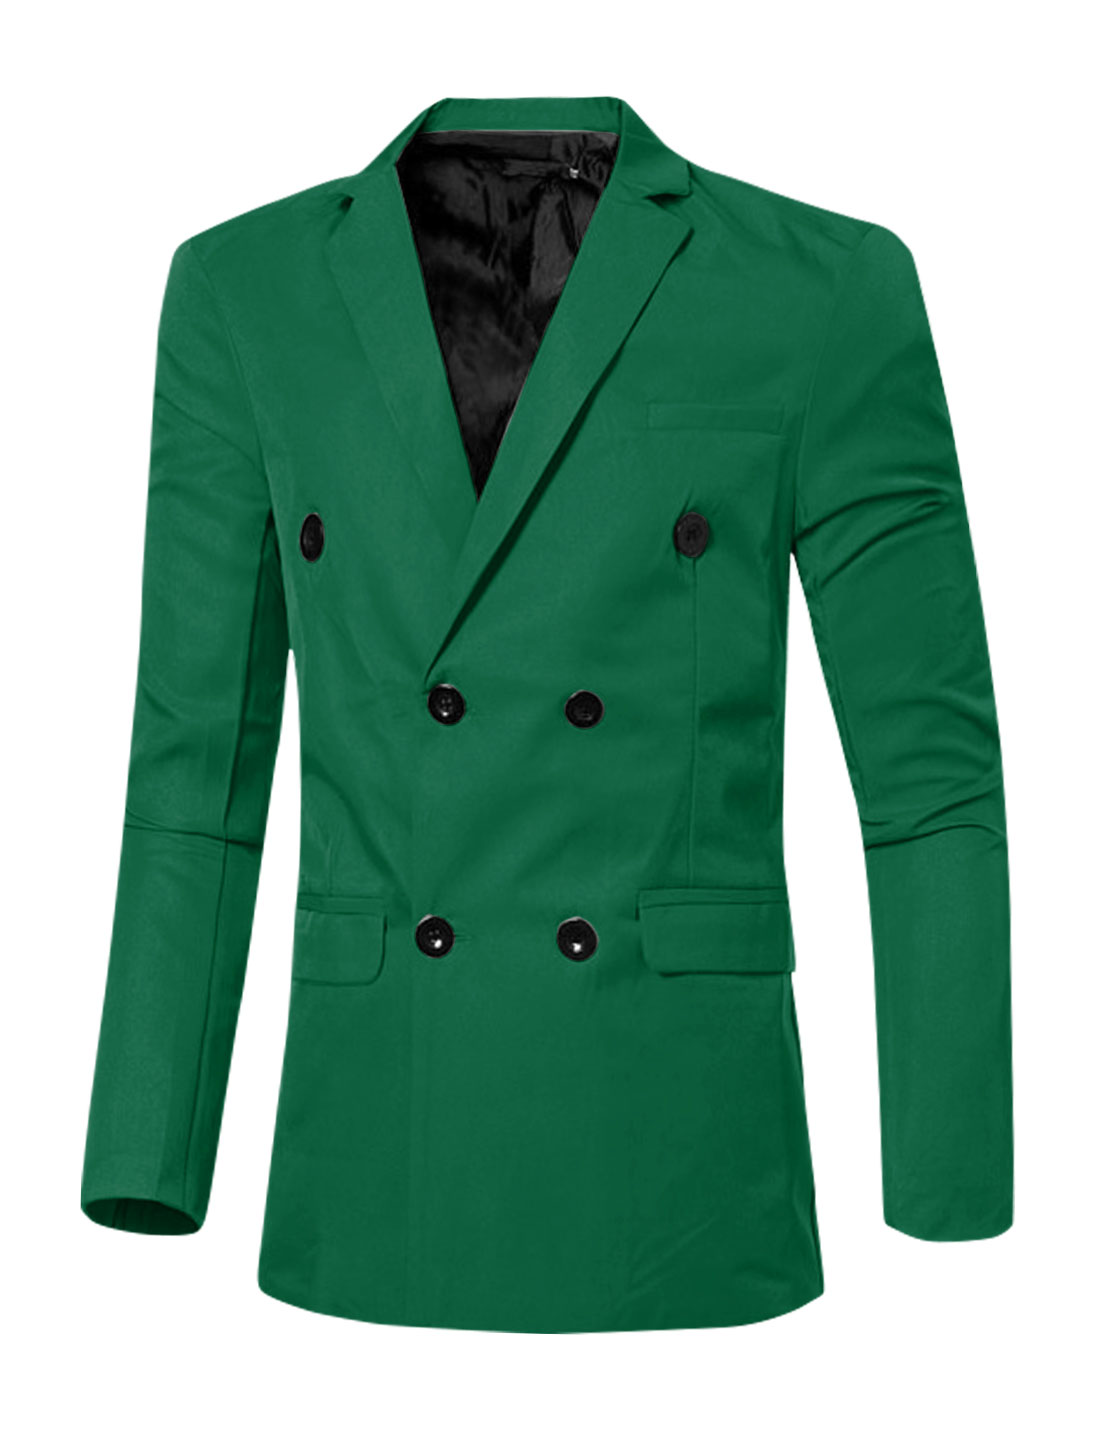 Men Notched Lapel Flap Pockets Double Breasted Blazer Green S